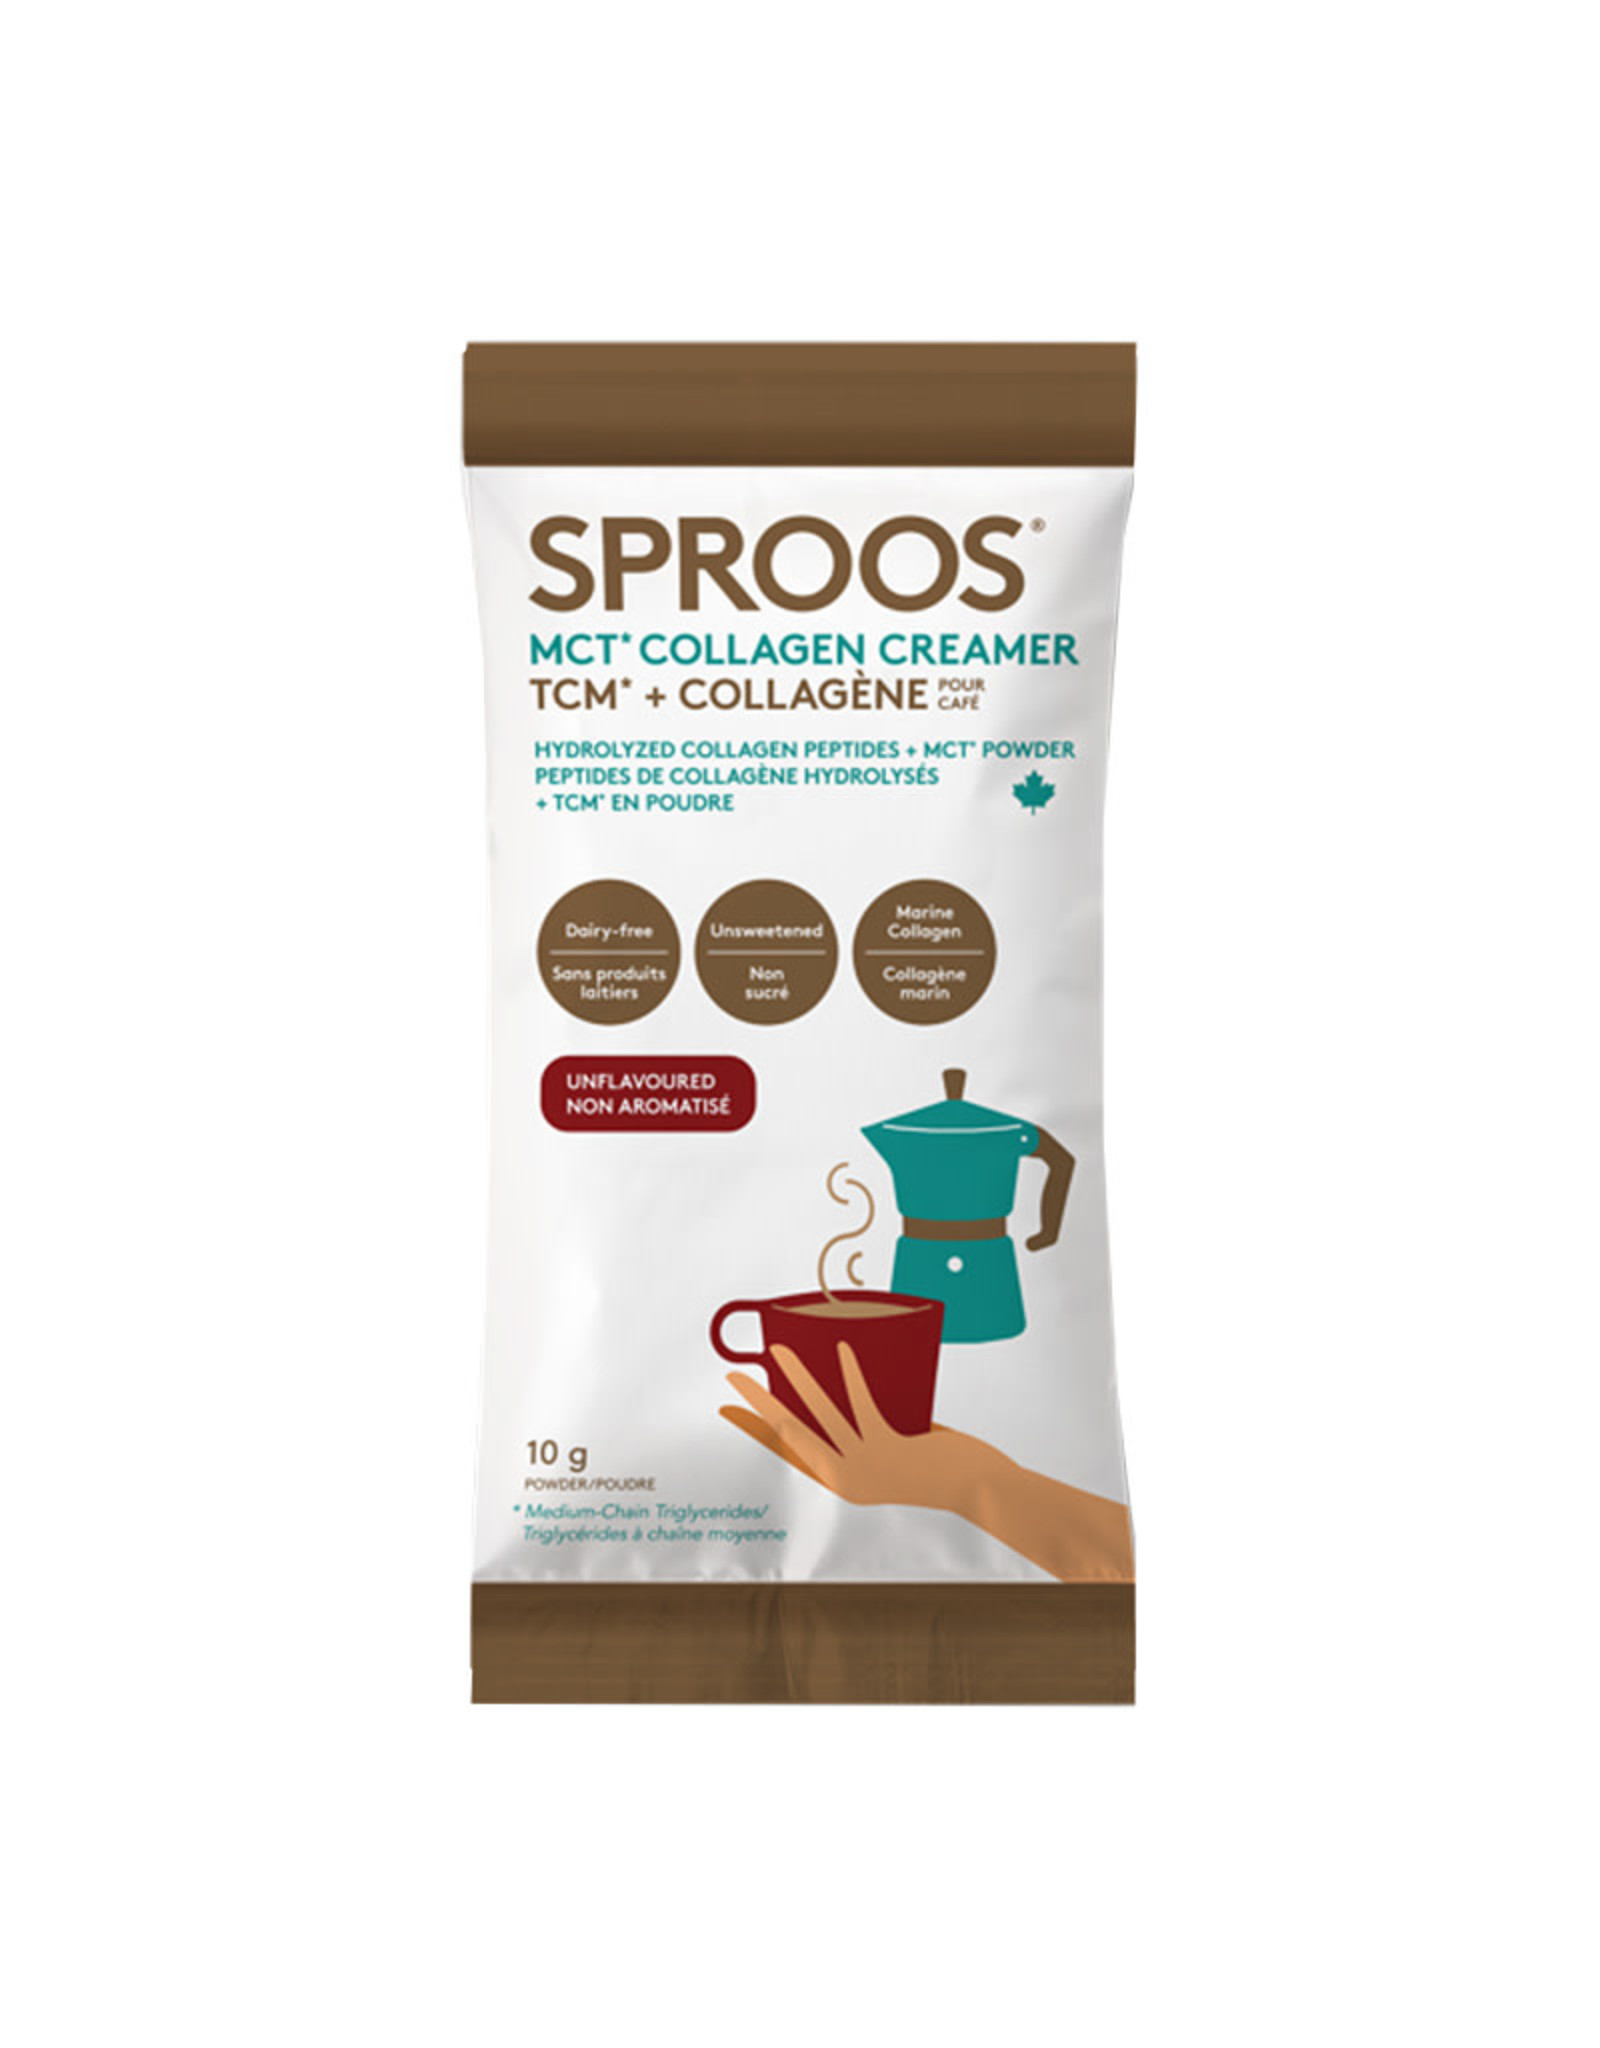 Sproos Sproos - MCT Collagen, Creamer (10g)